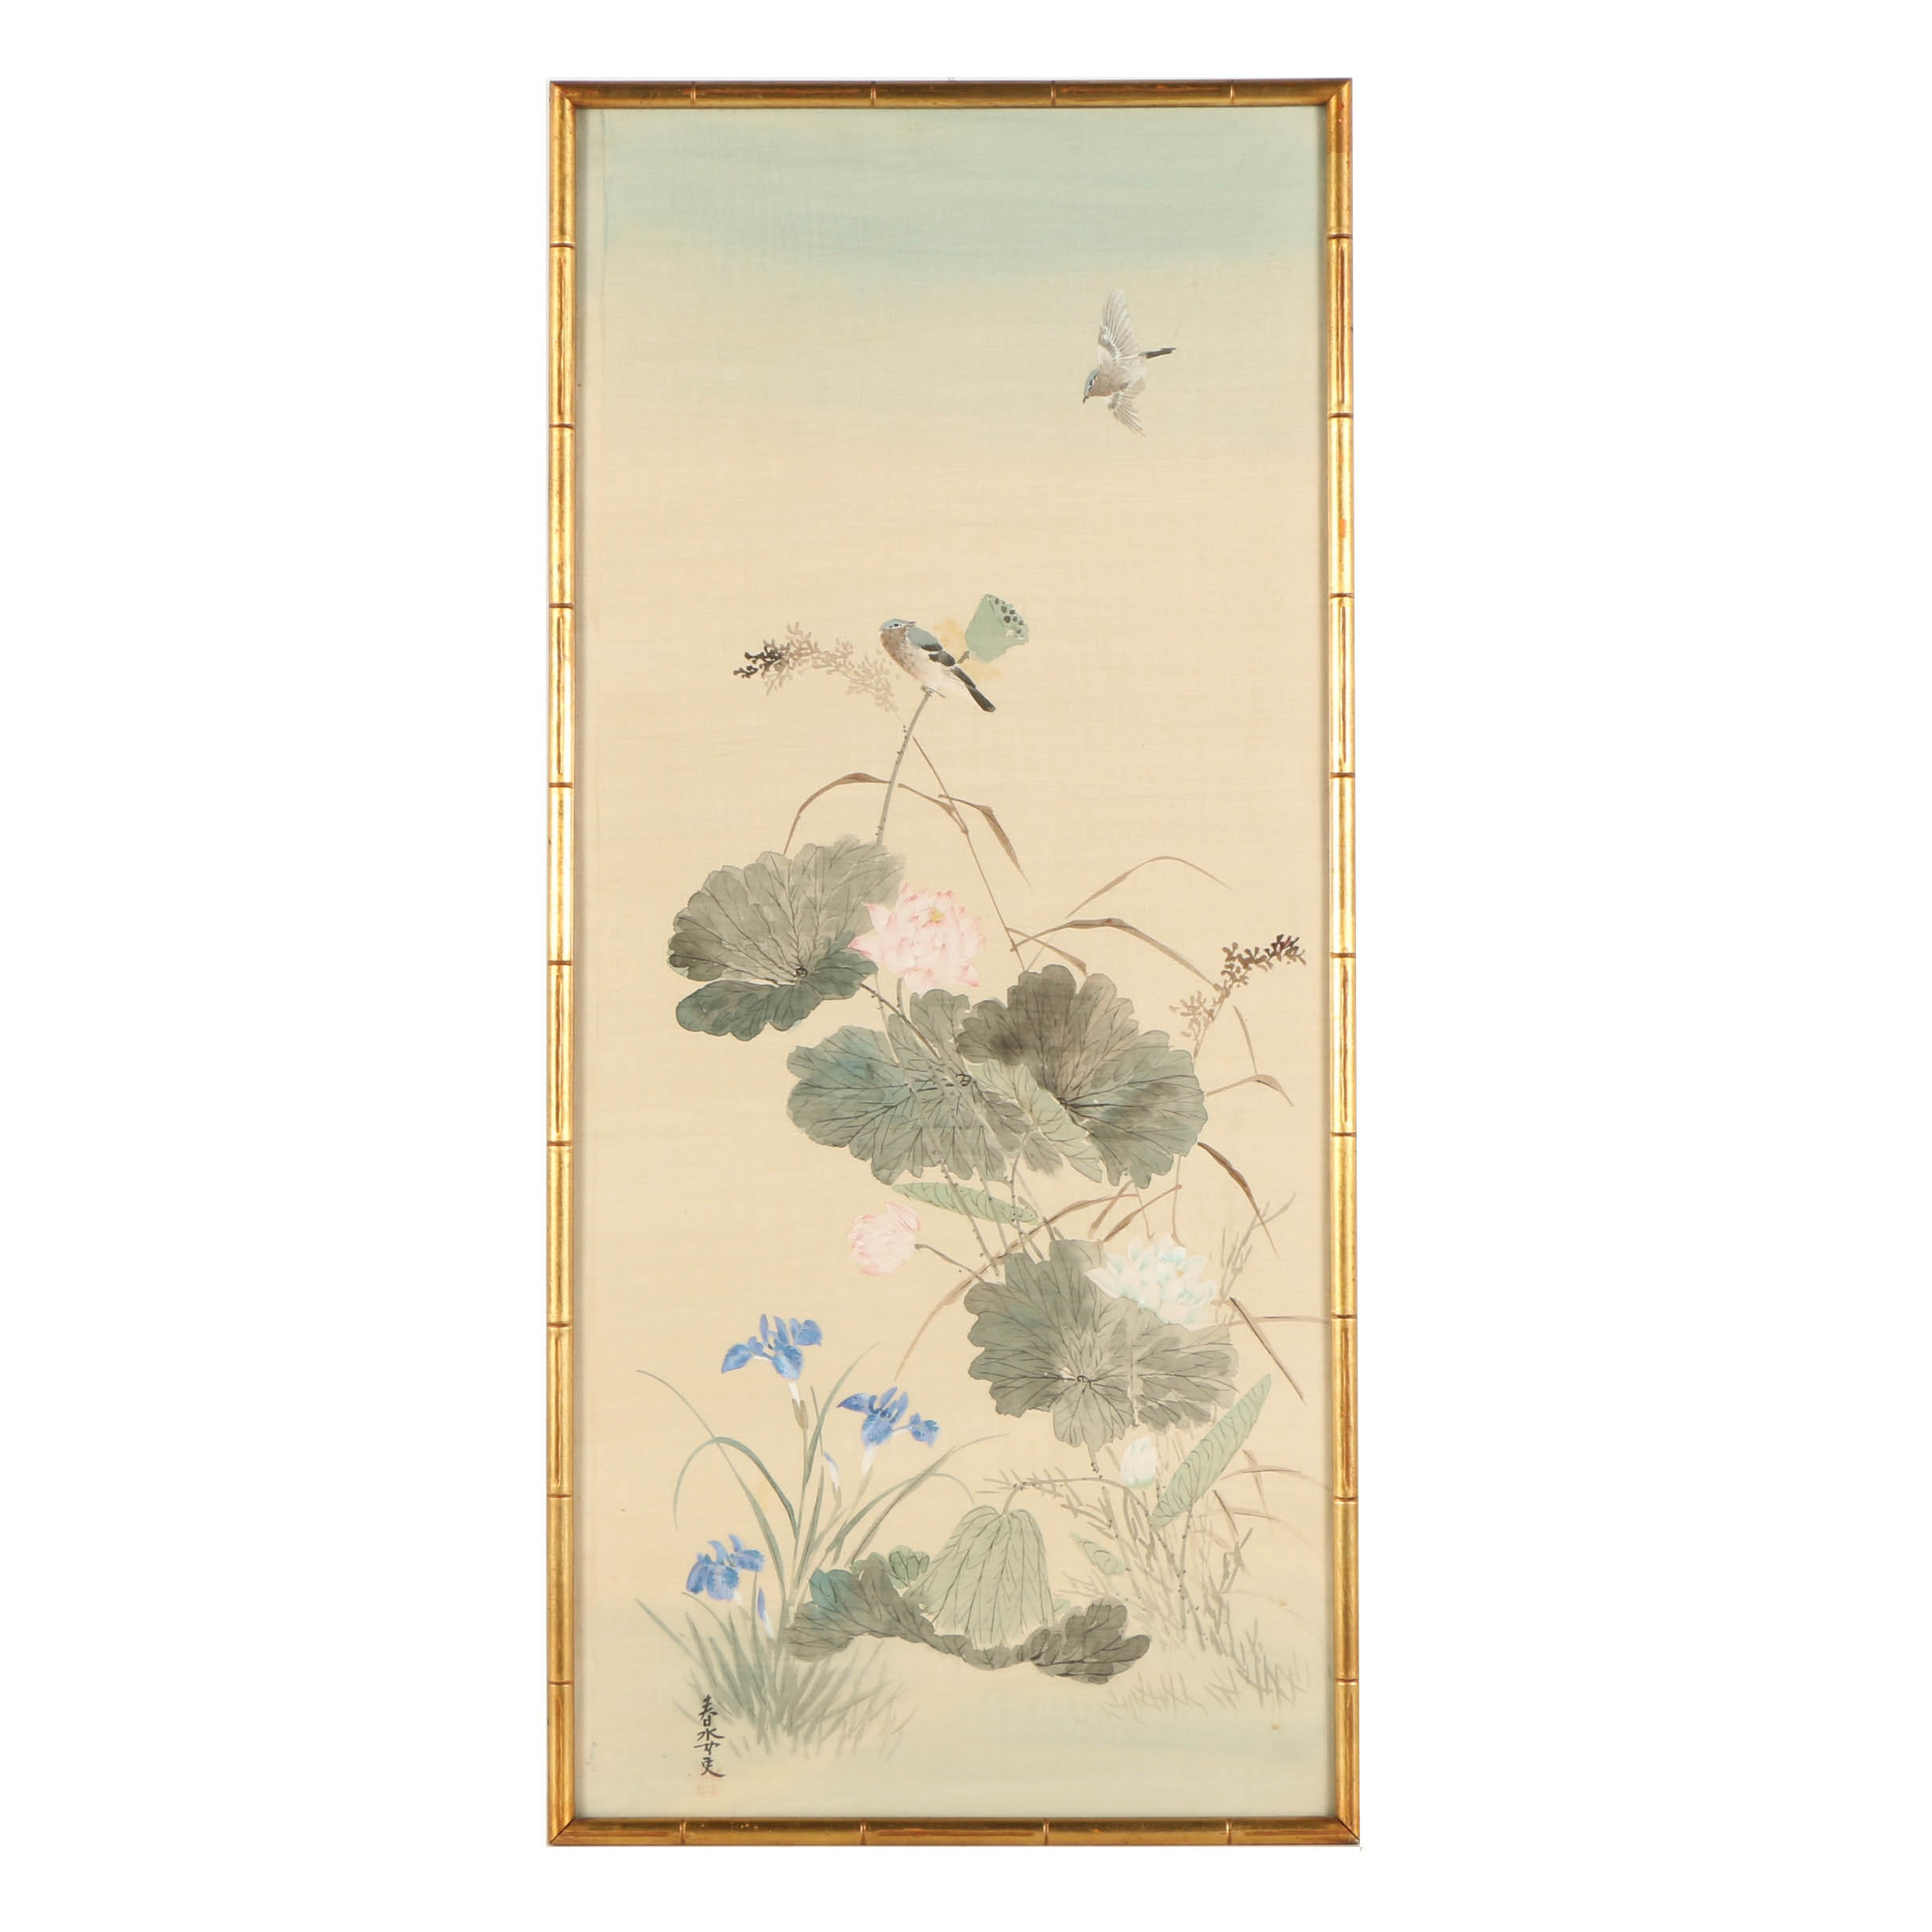 Japanese Watercolor Painting on Silk of Bird and Flower Motif